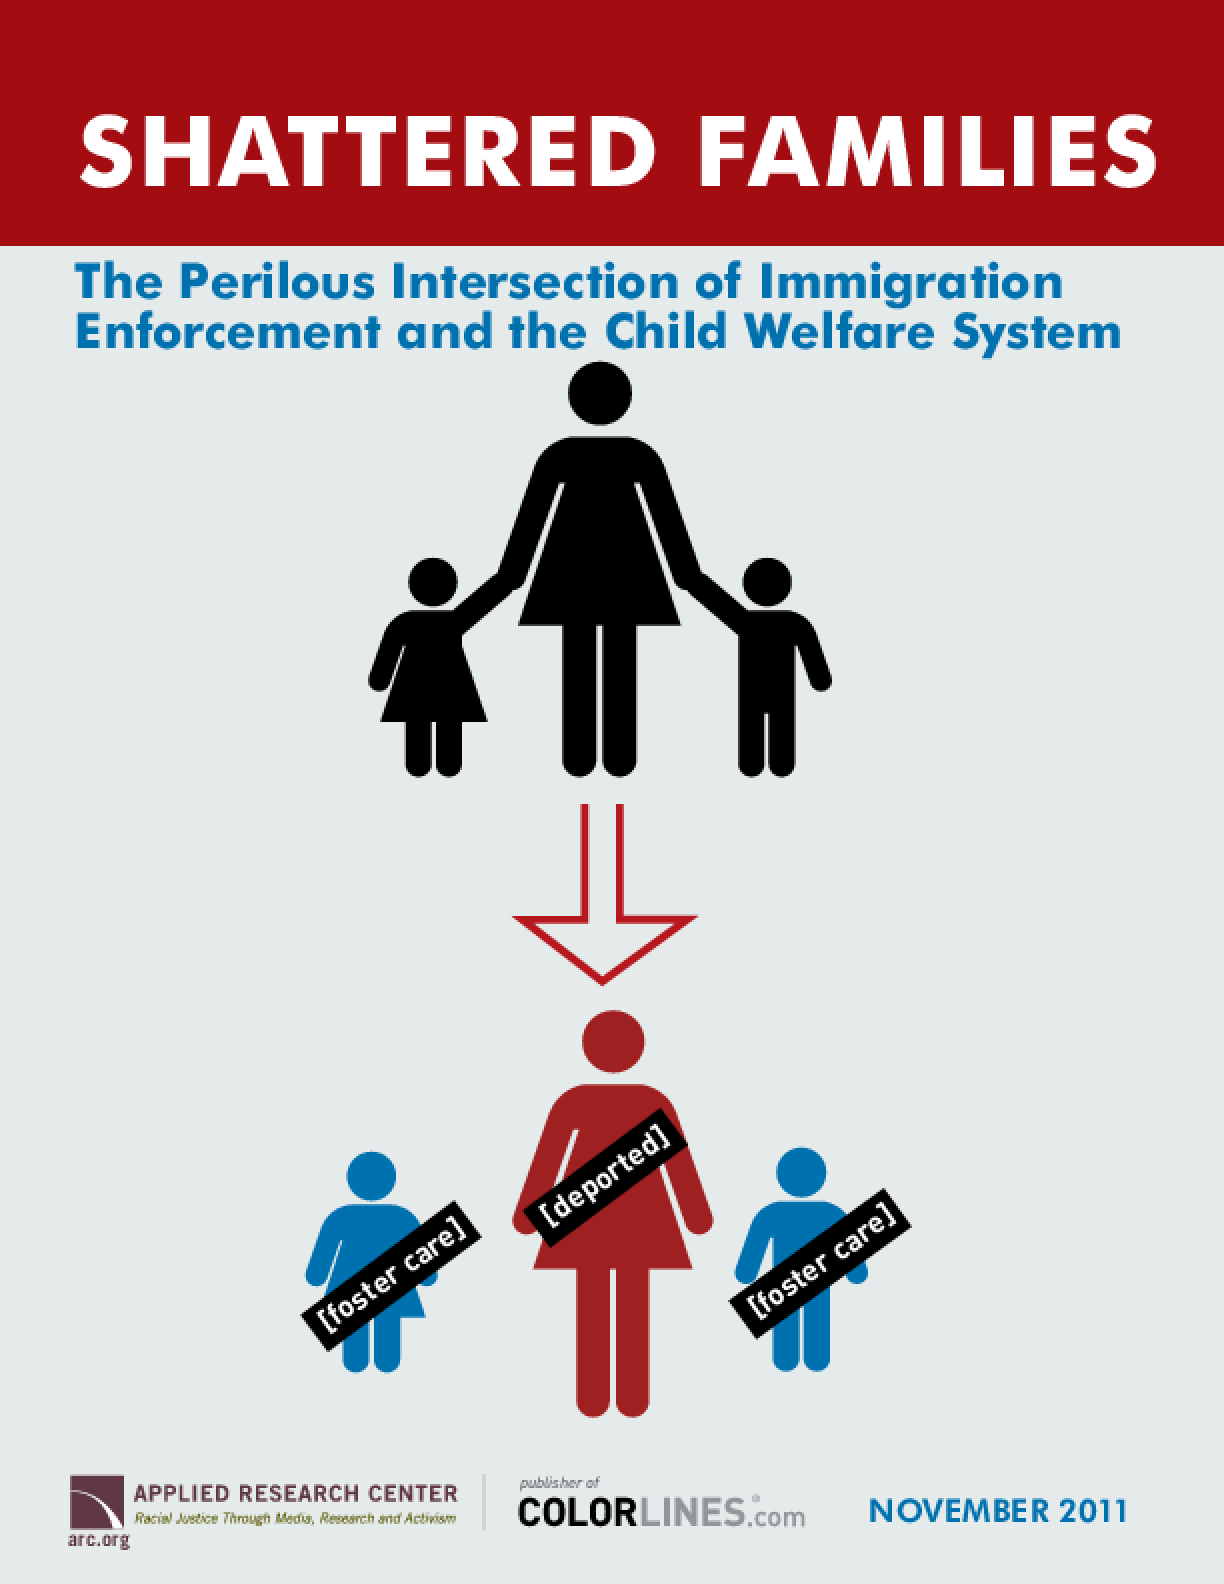 Shattered Families: The Perilous Intersection of Immigration Enforcement and the Child Welfare System